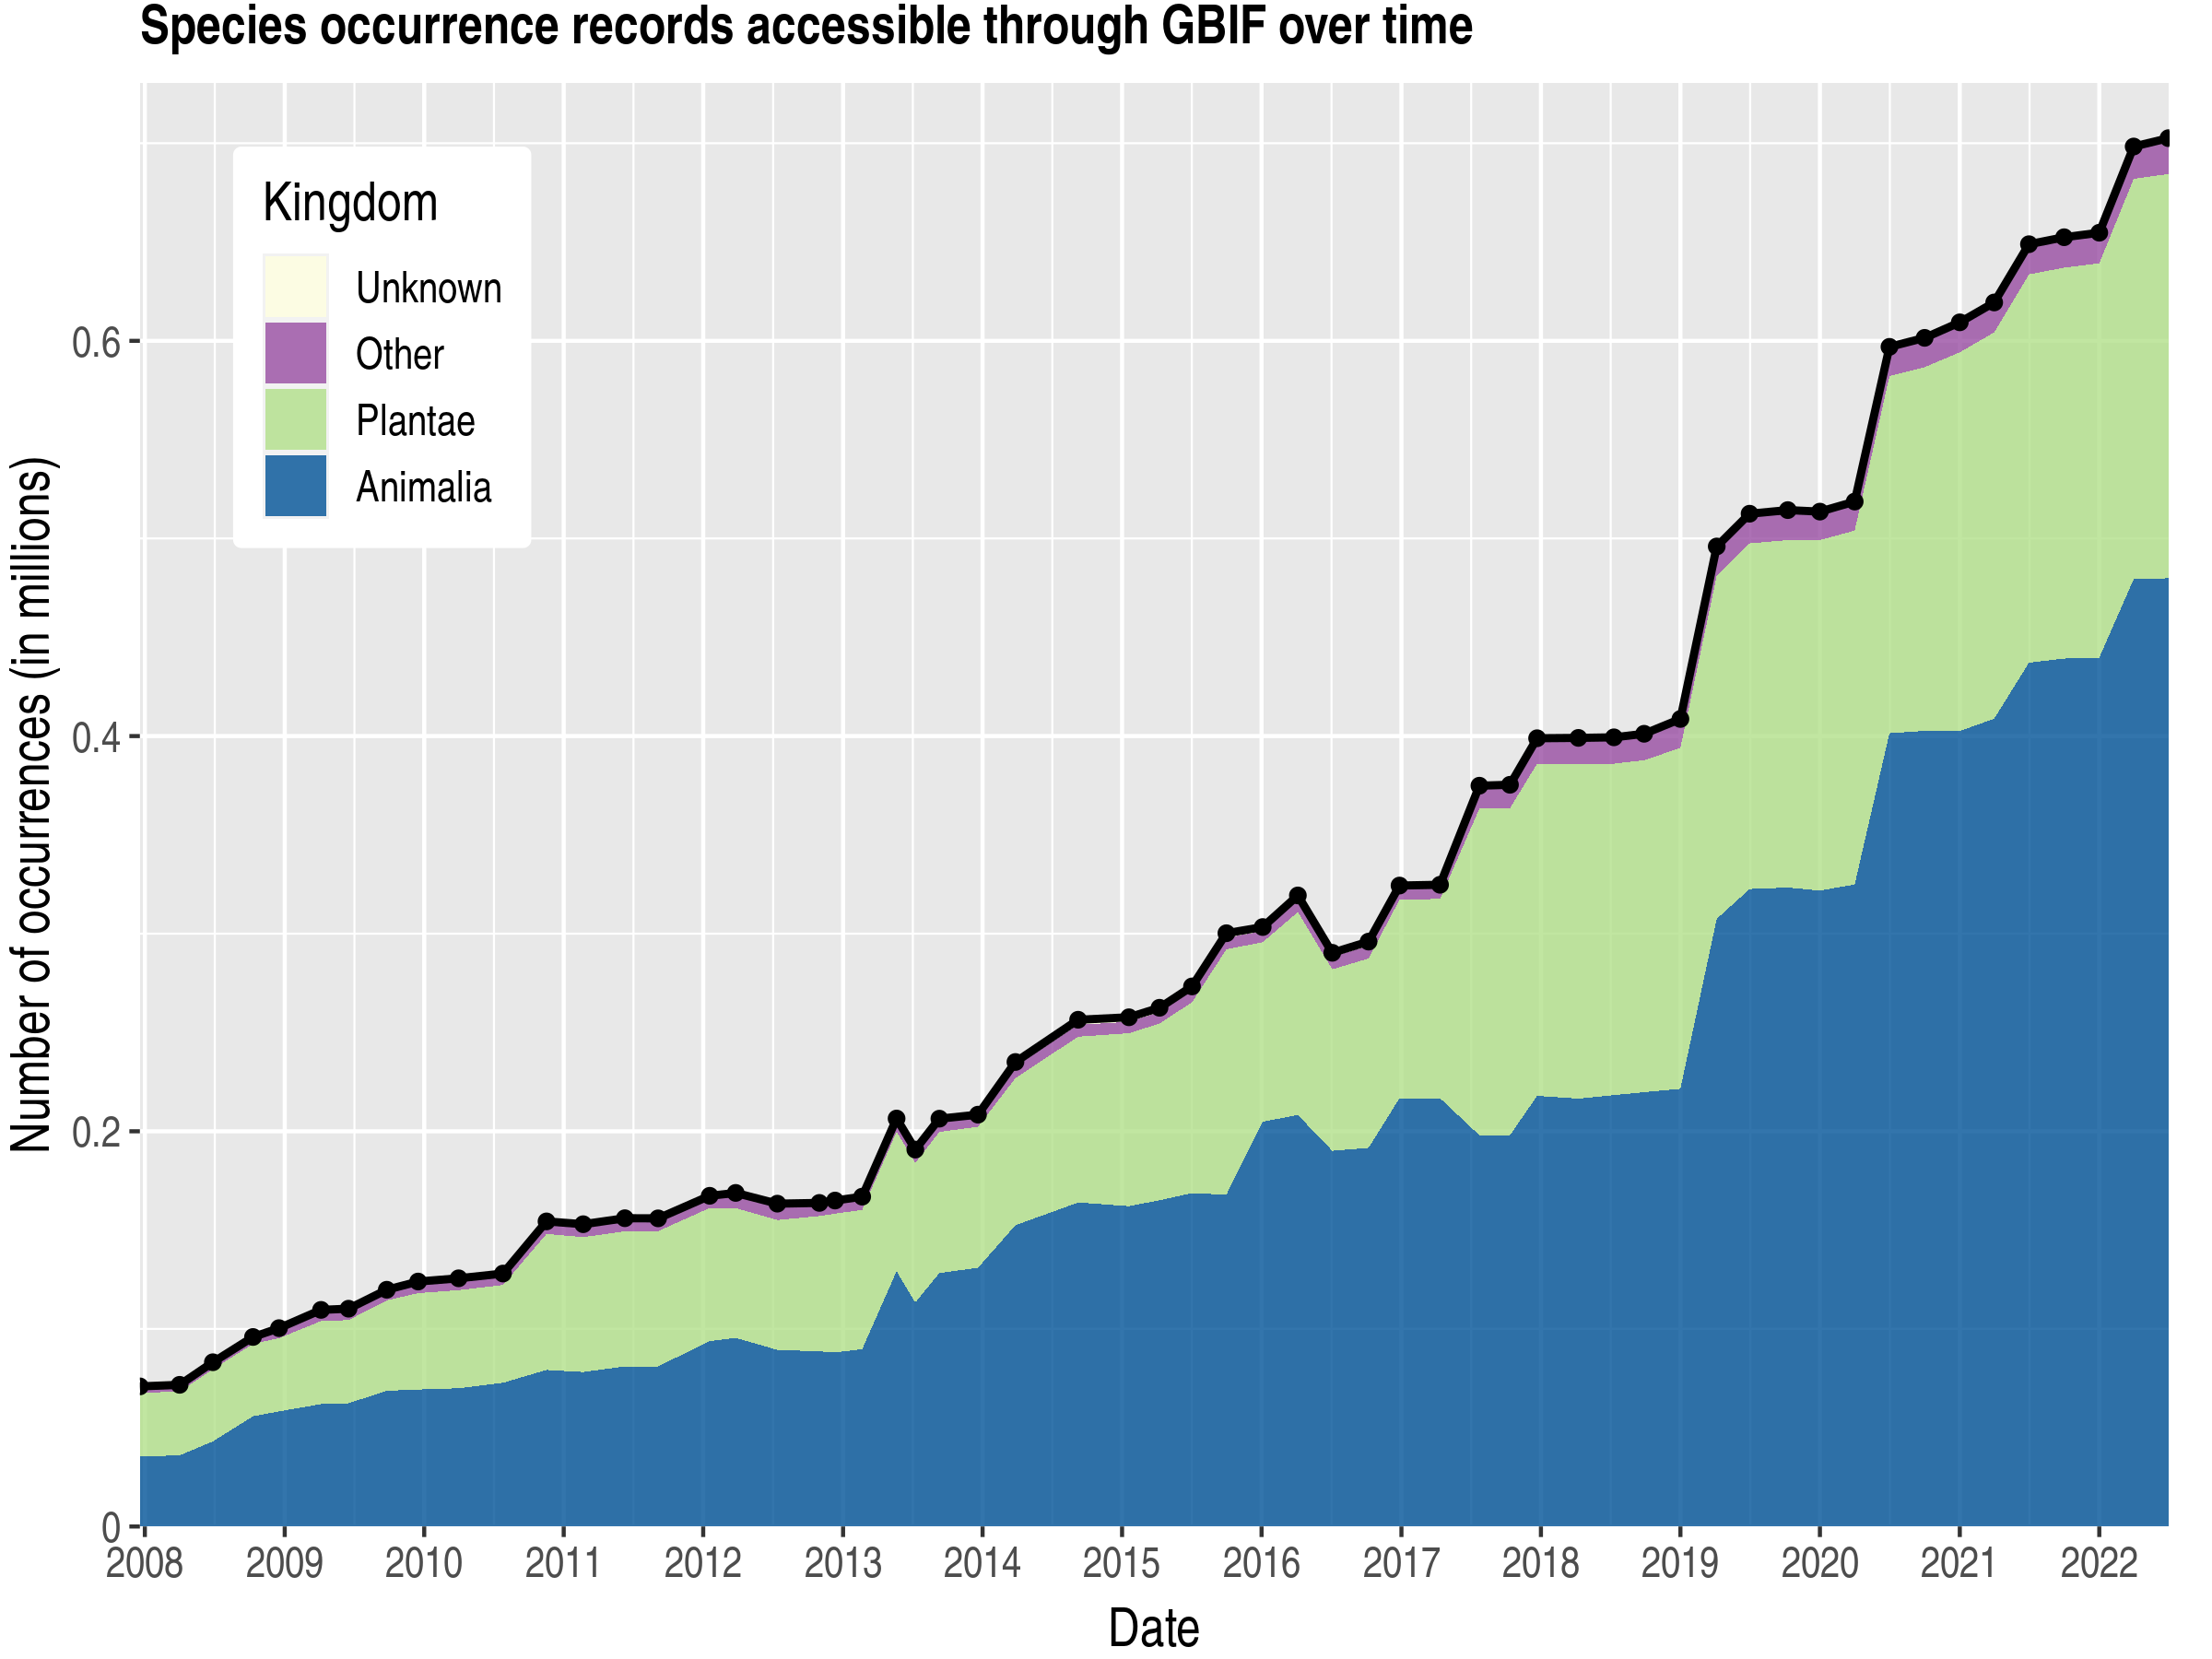 Data trend of records by kingdom about Guyana